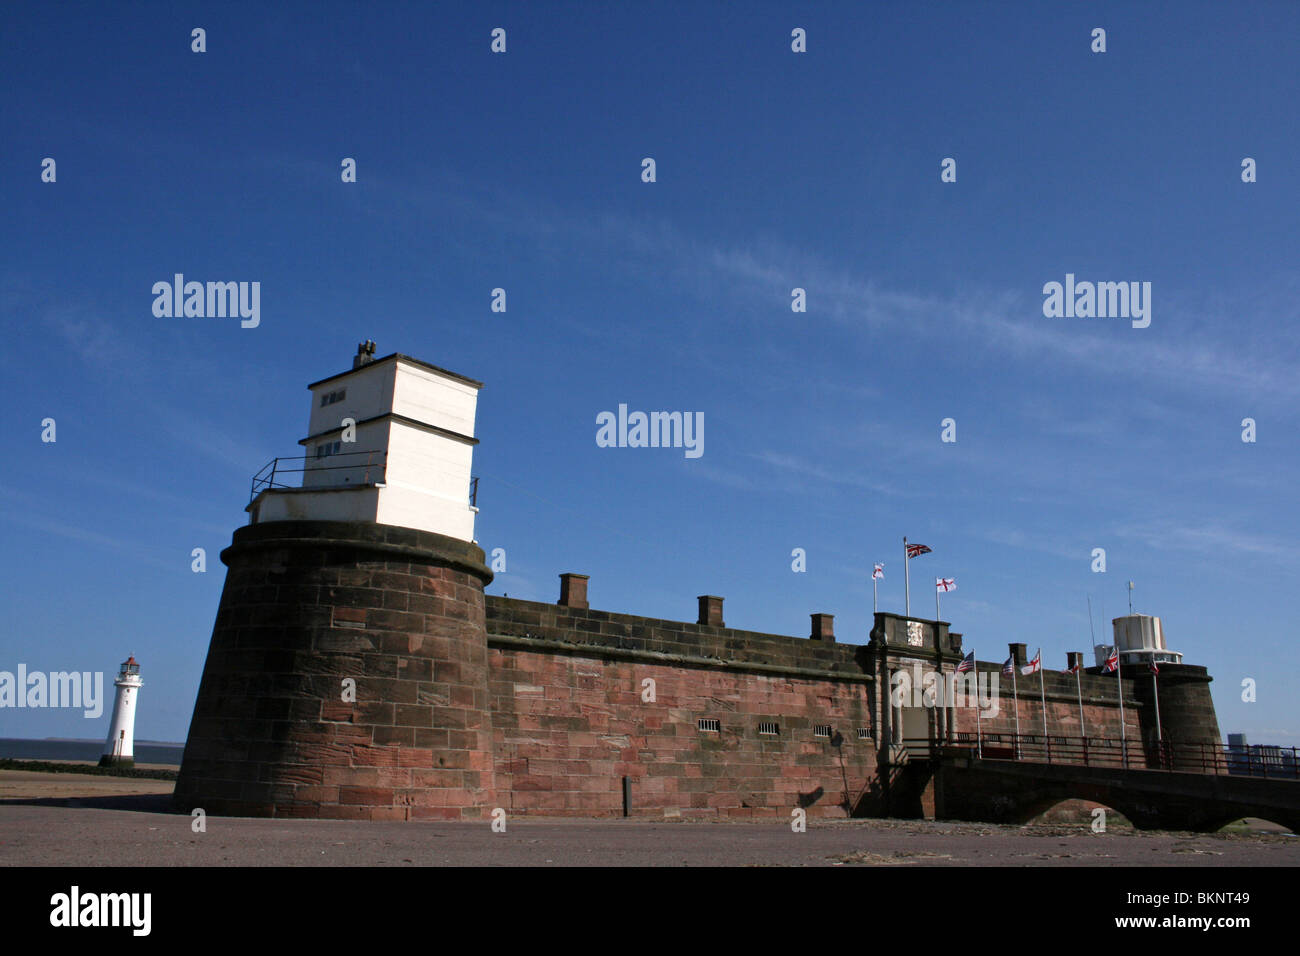 Fort Perch Rock And Lighthouse At New Brighton, The Wirral, Wallasey, Merseyside, UK - Stock Image